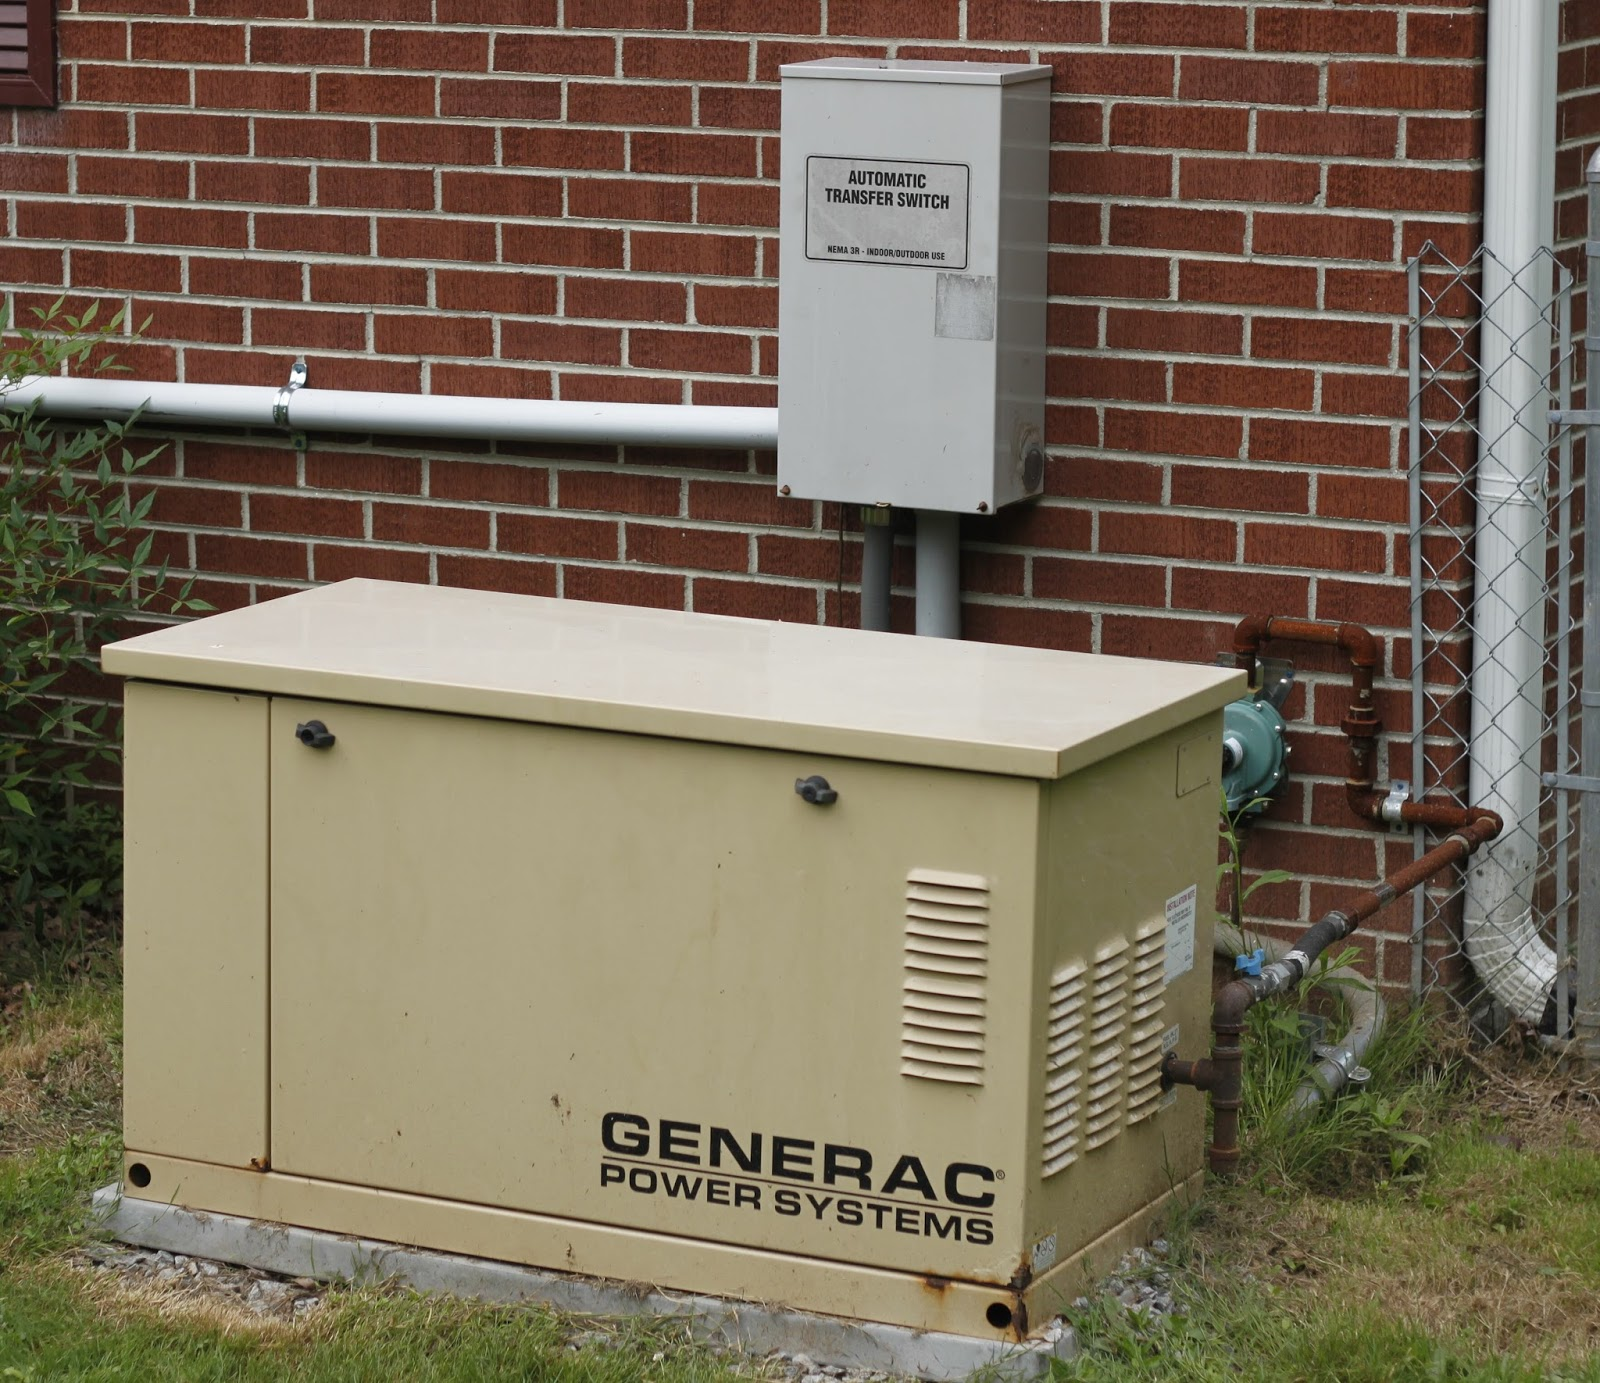 small resolution of  that battery charger issues seem to be common with generac generators not to pick on generac this may be a common issue i found a system schematic